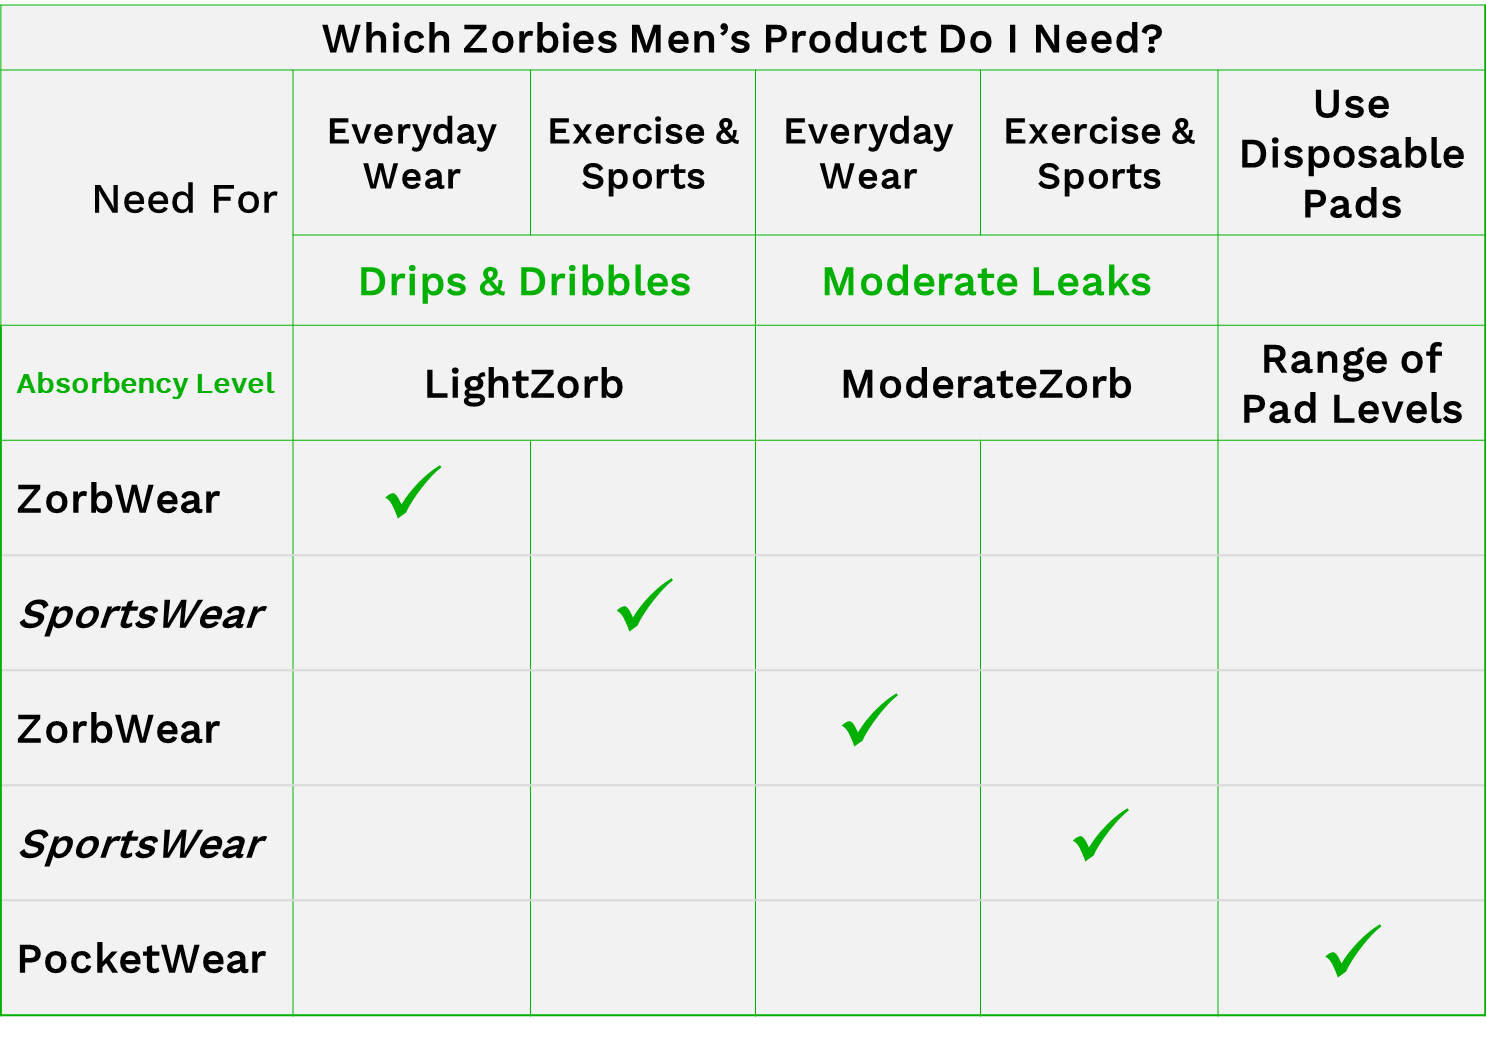 chart answering the question which mens zorbies product do I need?